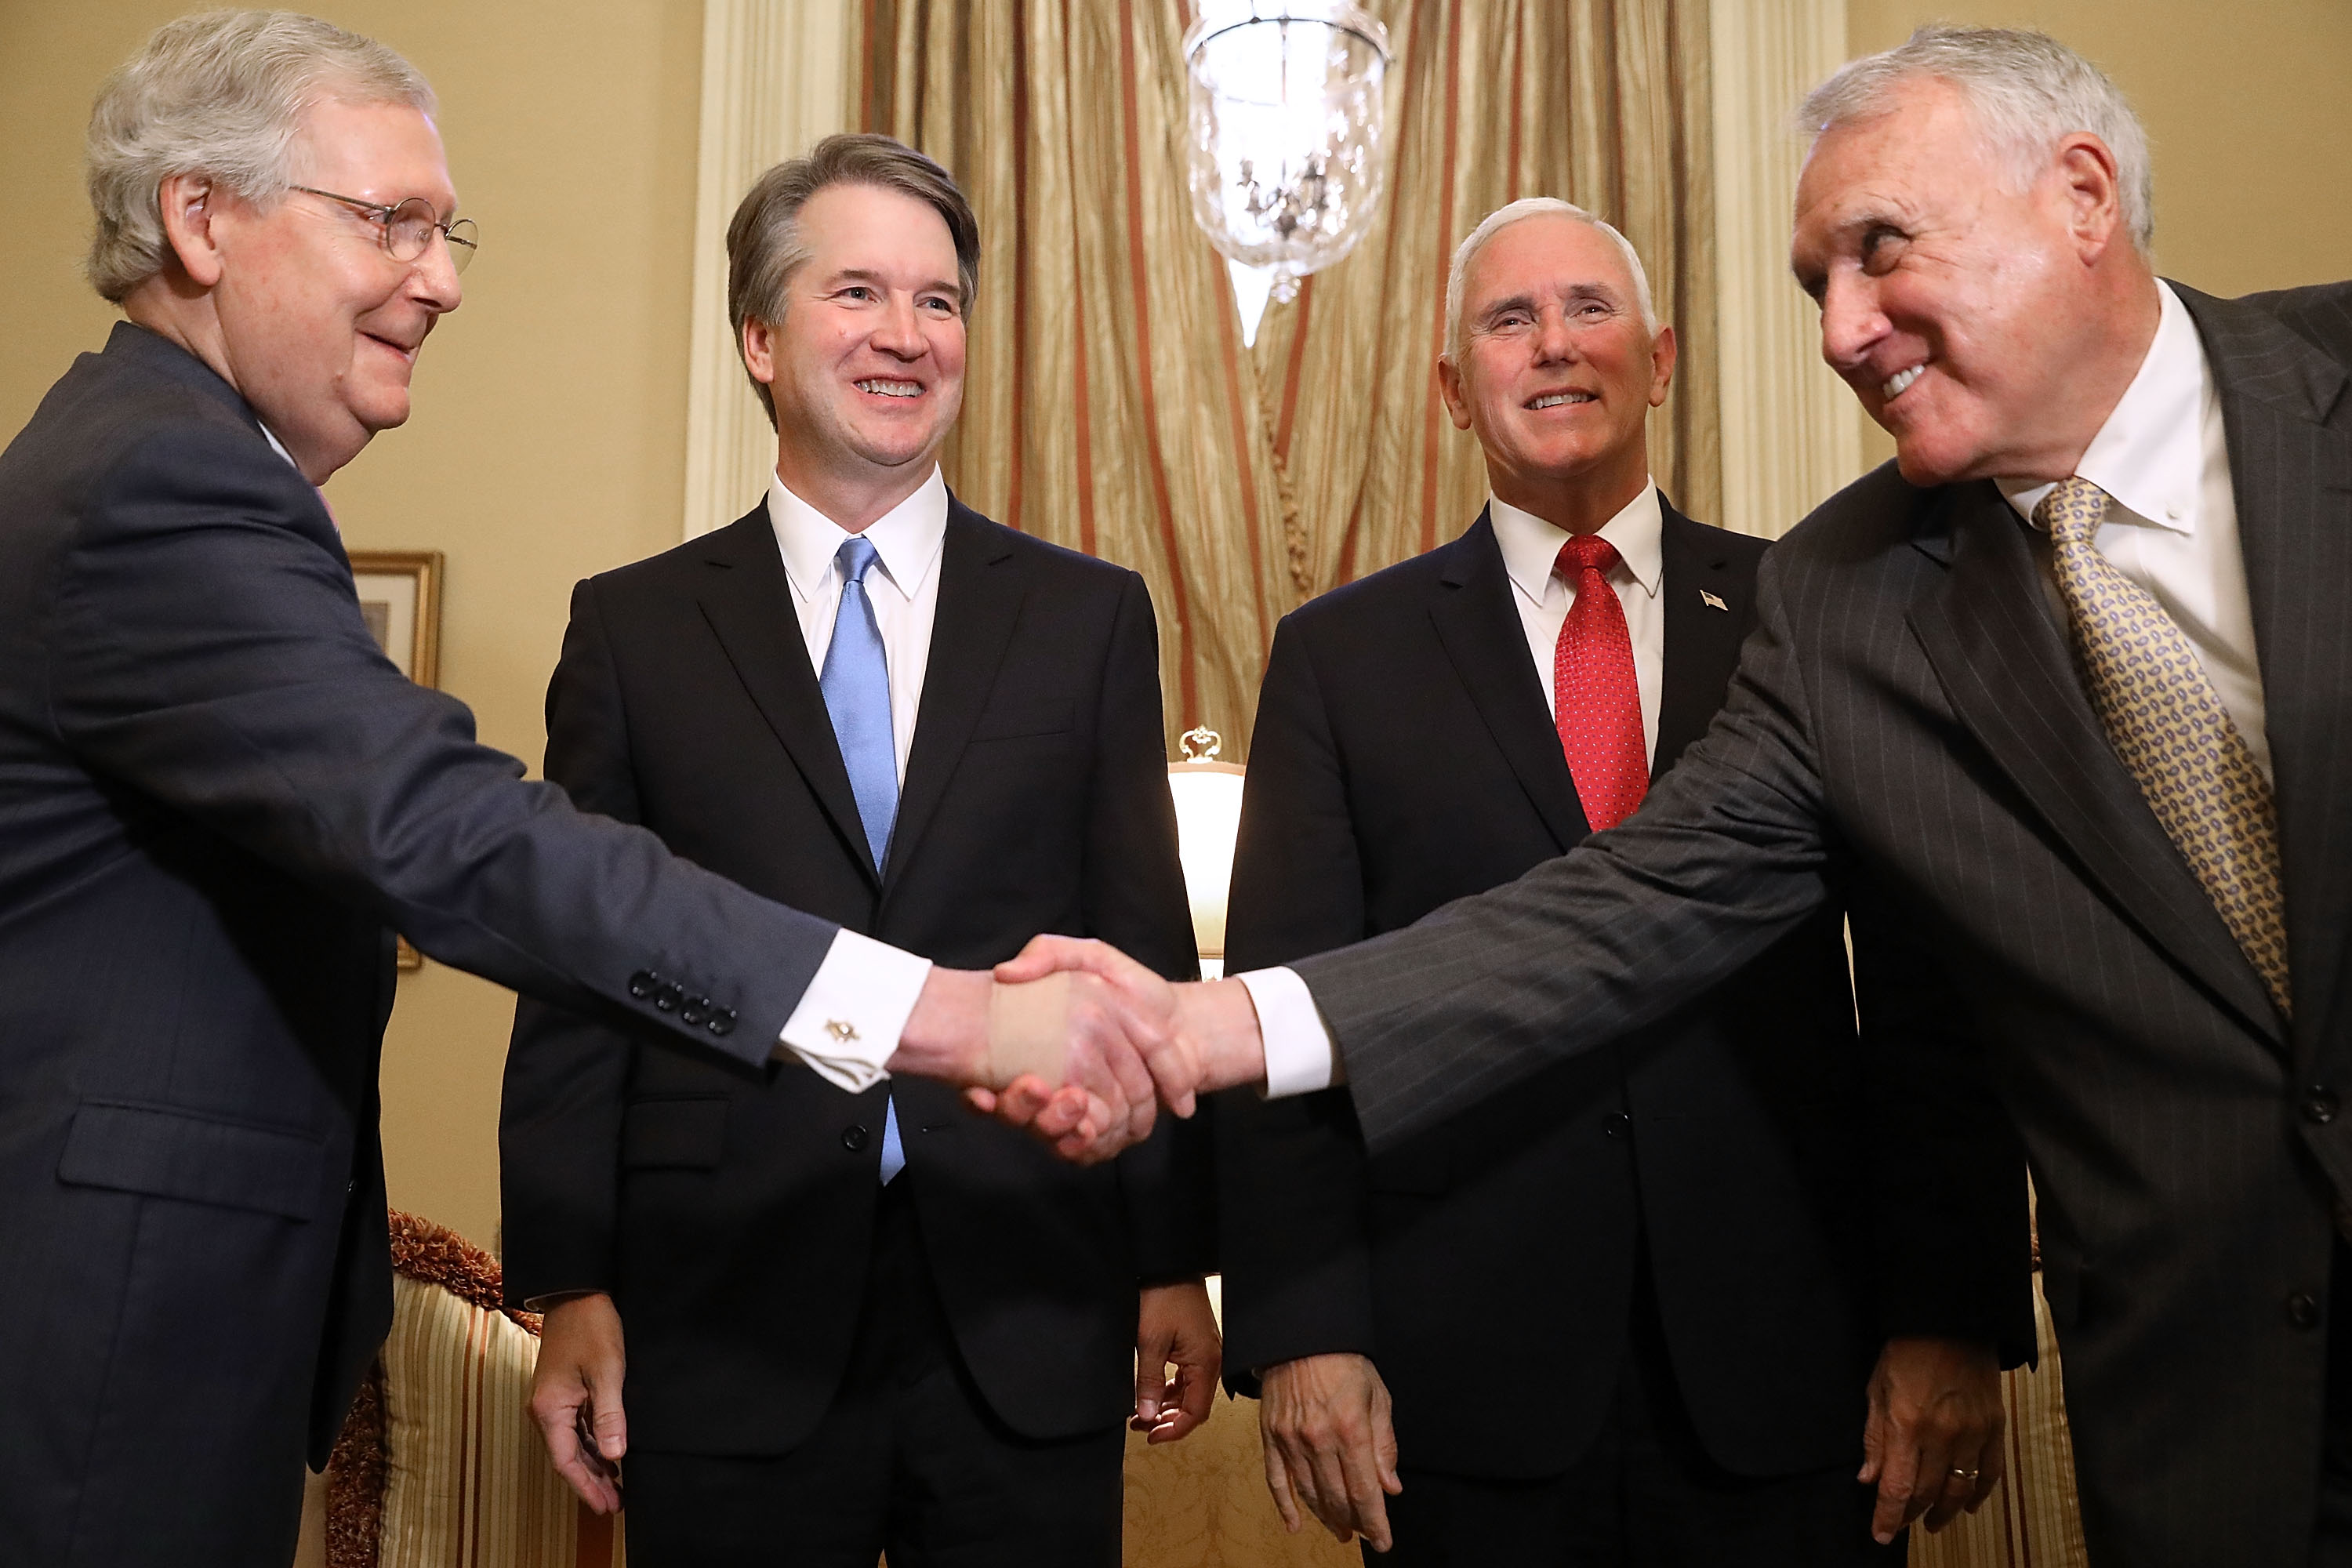 (L-R) Senate Majority Leader Mitch McConnell, Judge Brett Kavanaugh, Vice President Mike Pence and former Sen. Jon Kyl greet one another before a meeting in McConnell's office in the U.S. Capitol July 10, 2018 in Washington, DC. (Photo by Chip Somodevilla/Getty Images)